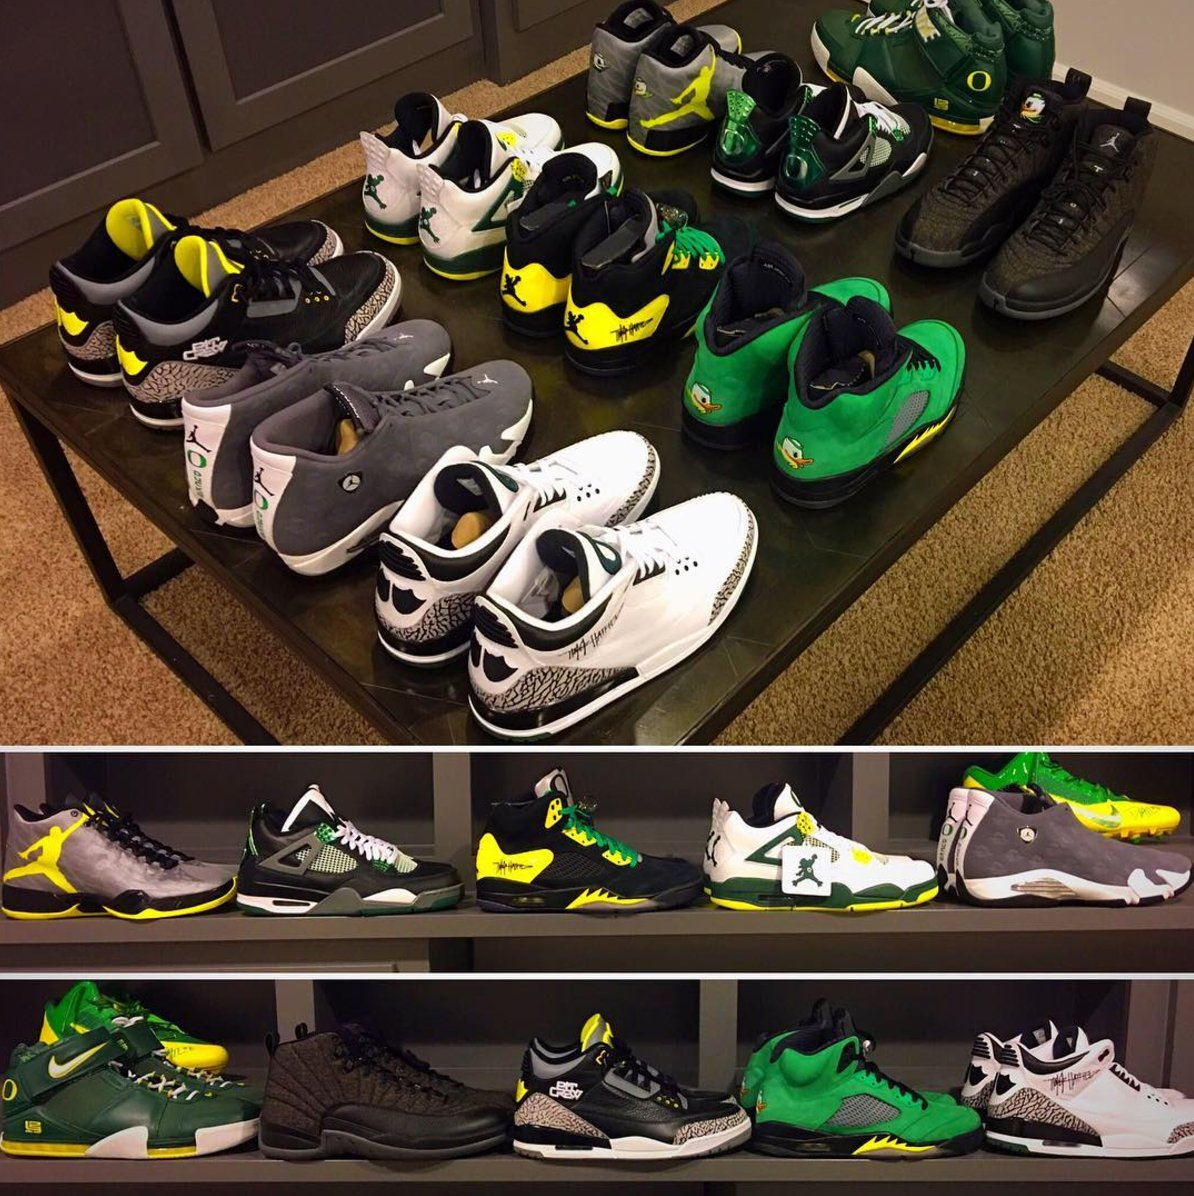 This Oregon Dunks PE collection is insane!  Which should he take with him to the Final Four?  📷 @a_maleet